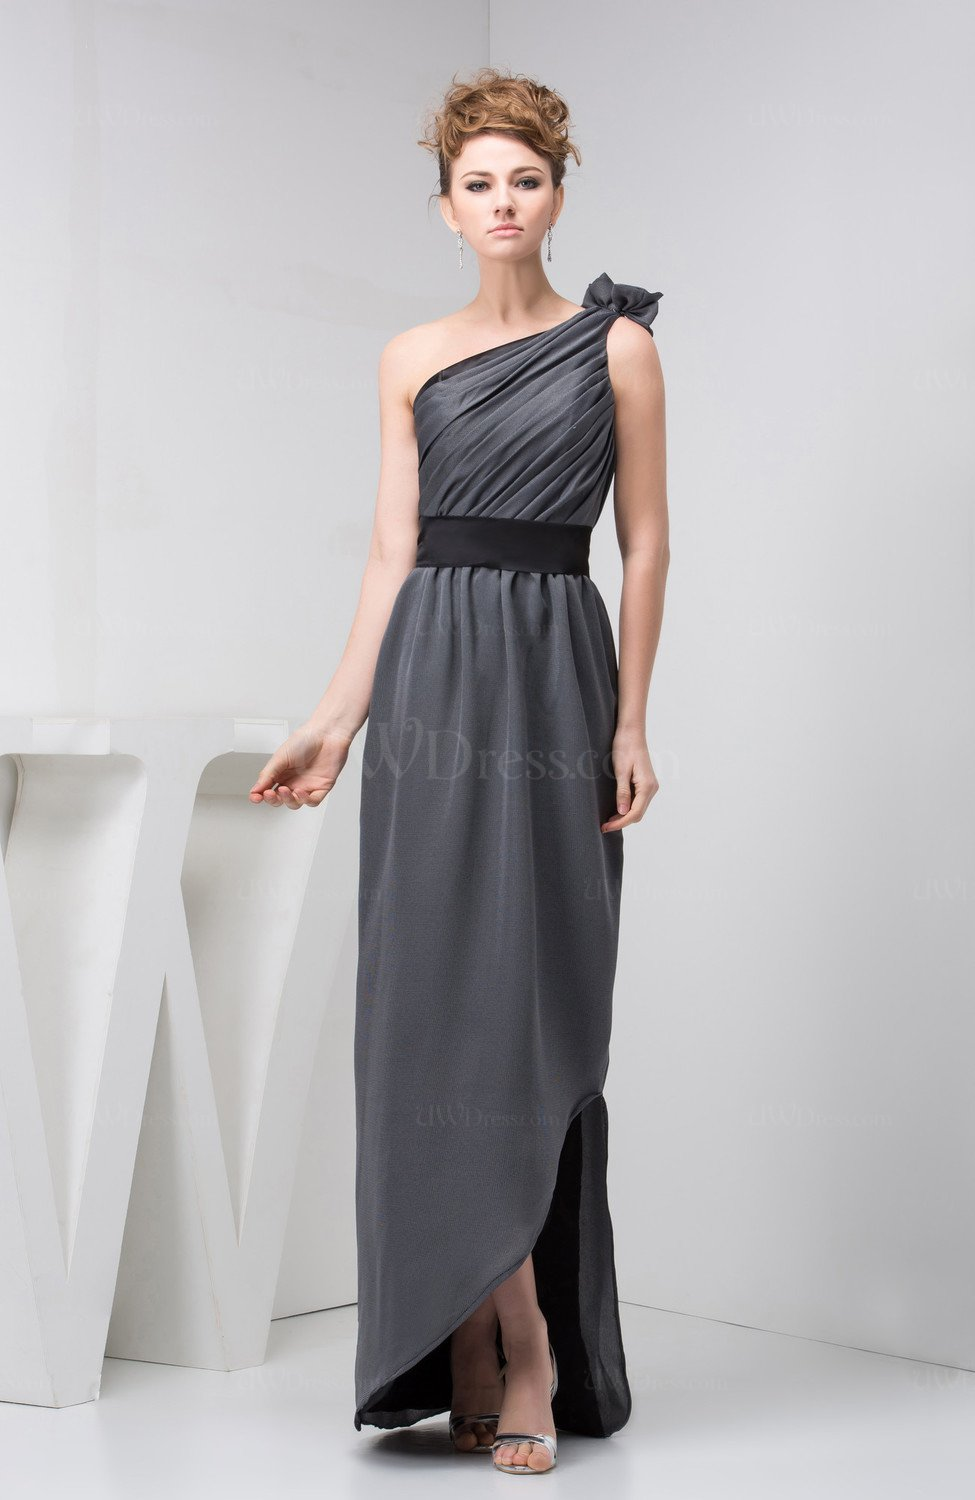 Affordable Evening Dress Petite Chic Low Back Semi Formal Summer ...